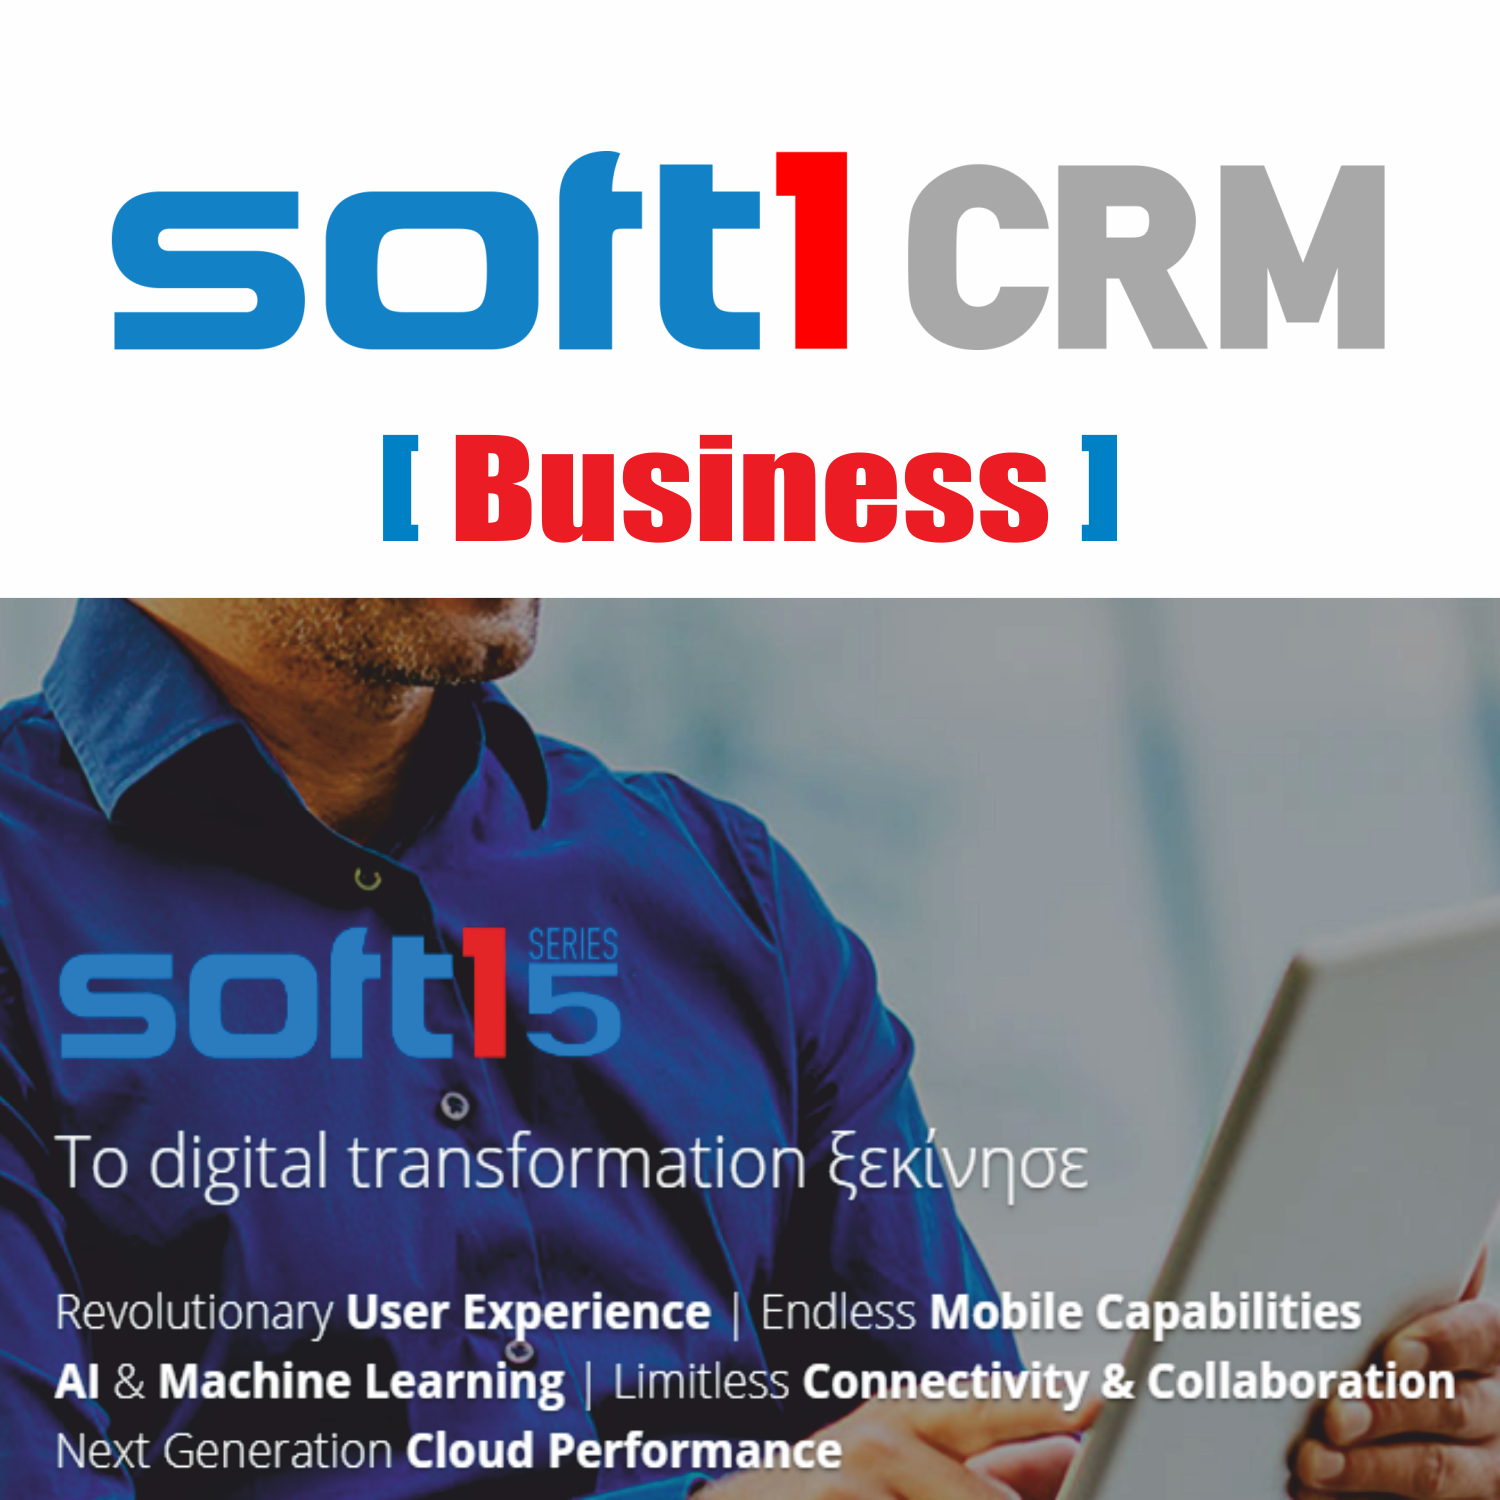 Soft1 OpEn CRM Business